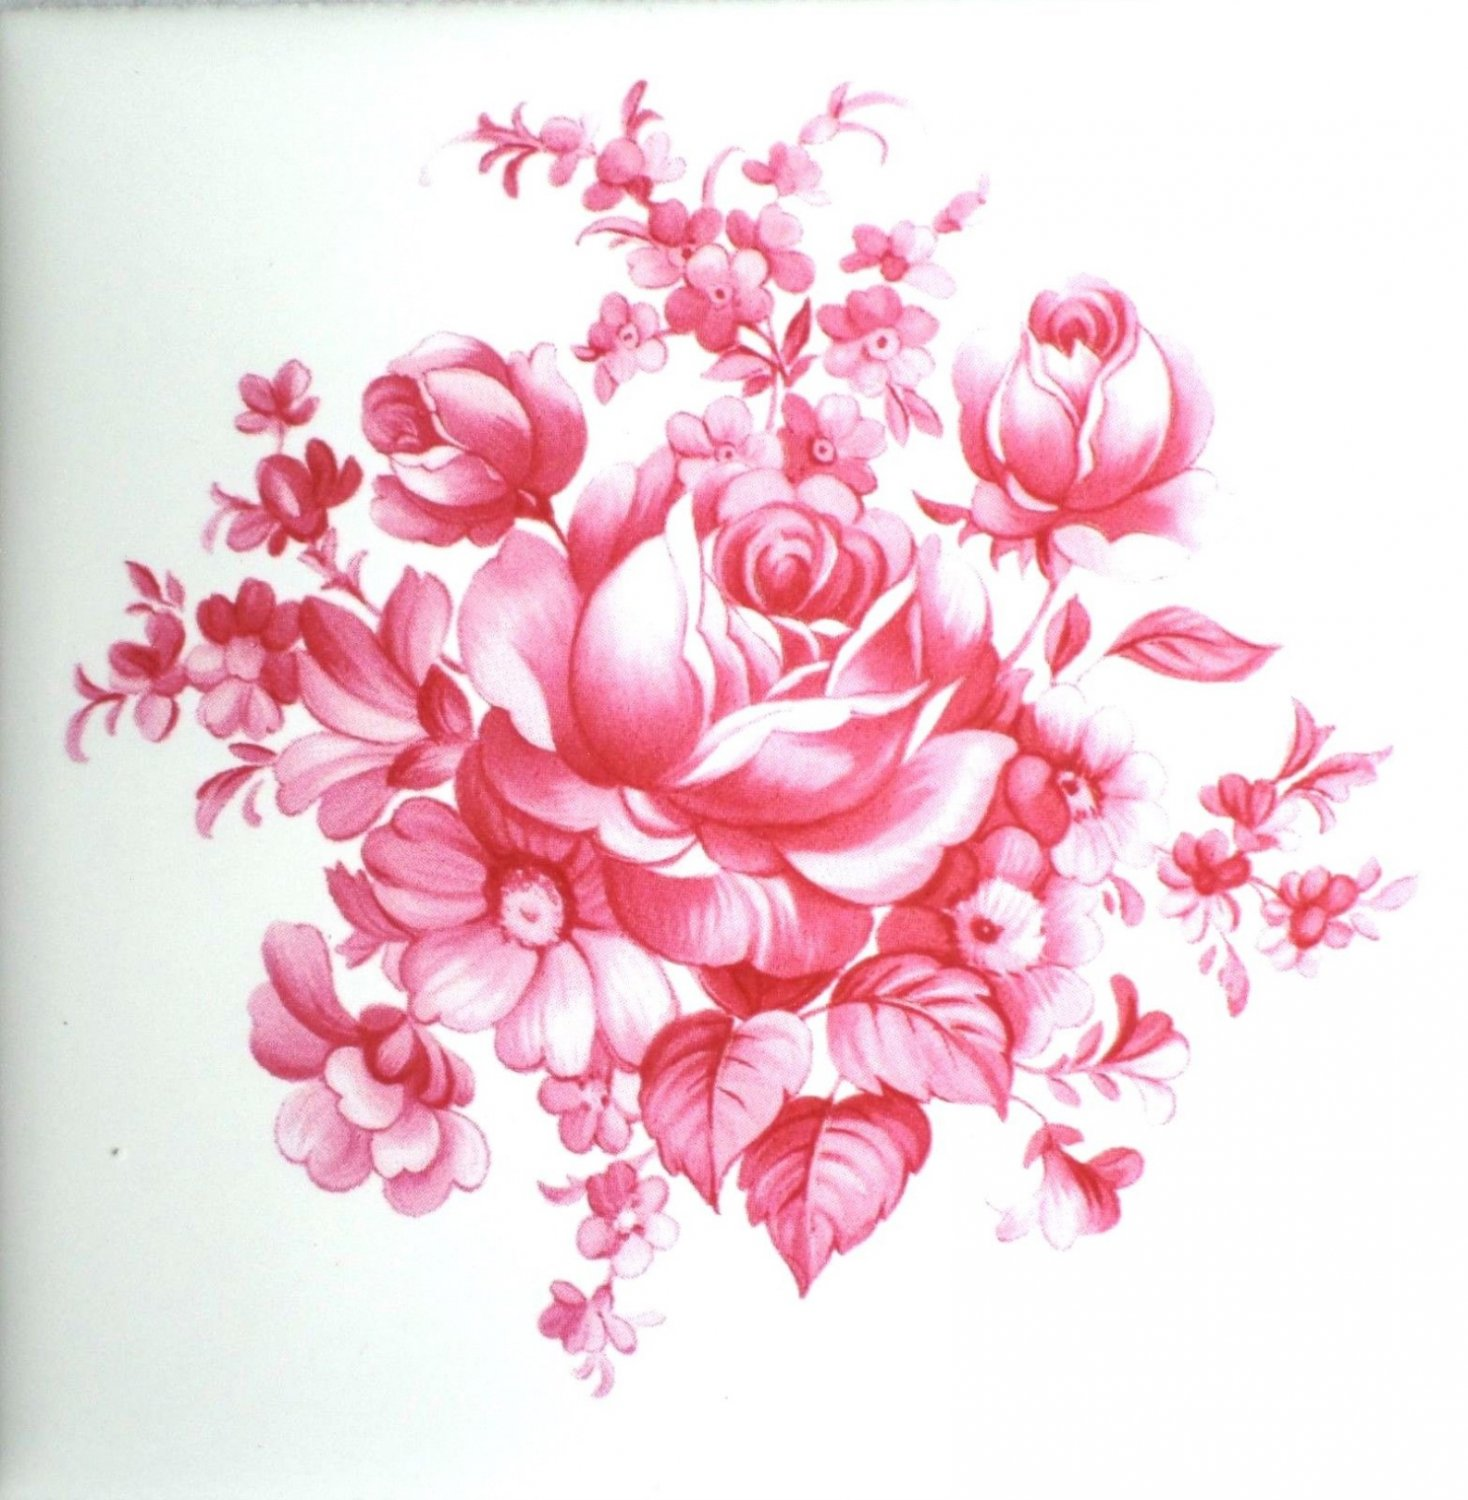 Rose Pink Flower 425 Kiln Fired Ceramic Tile Backsplash Decor